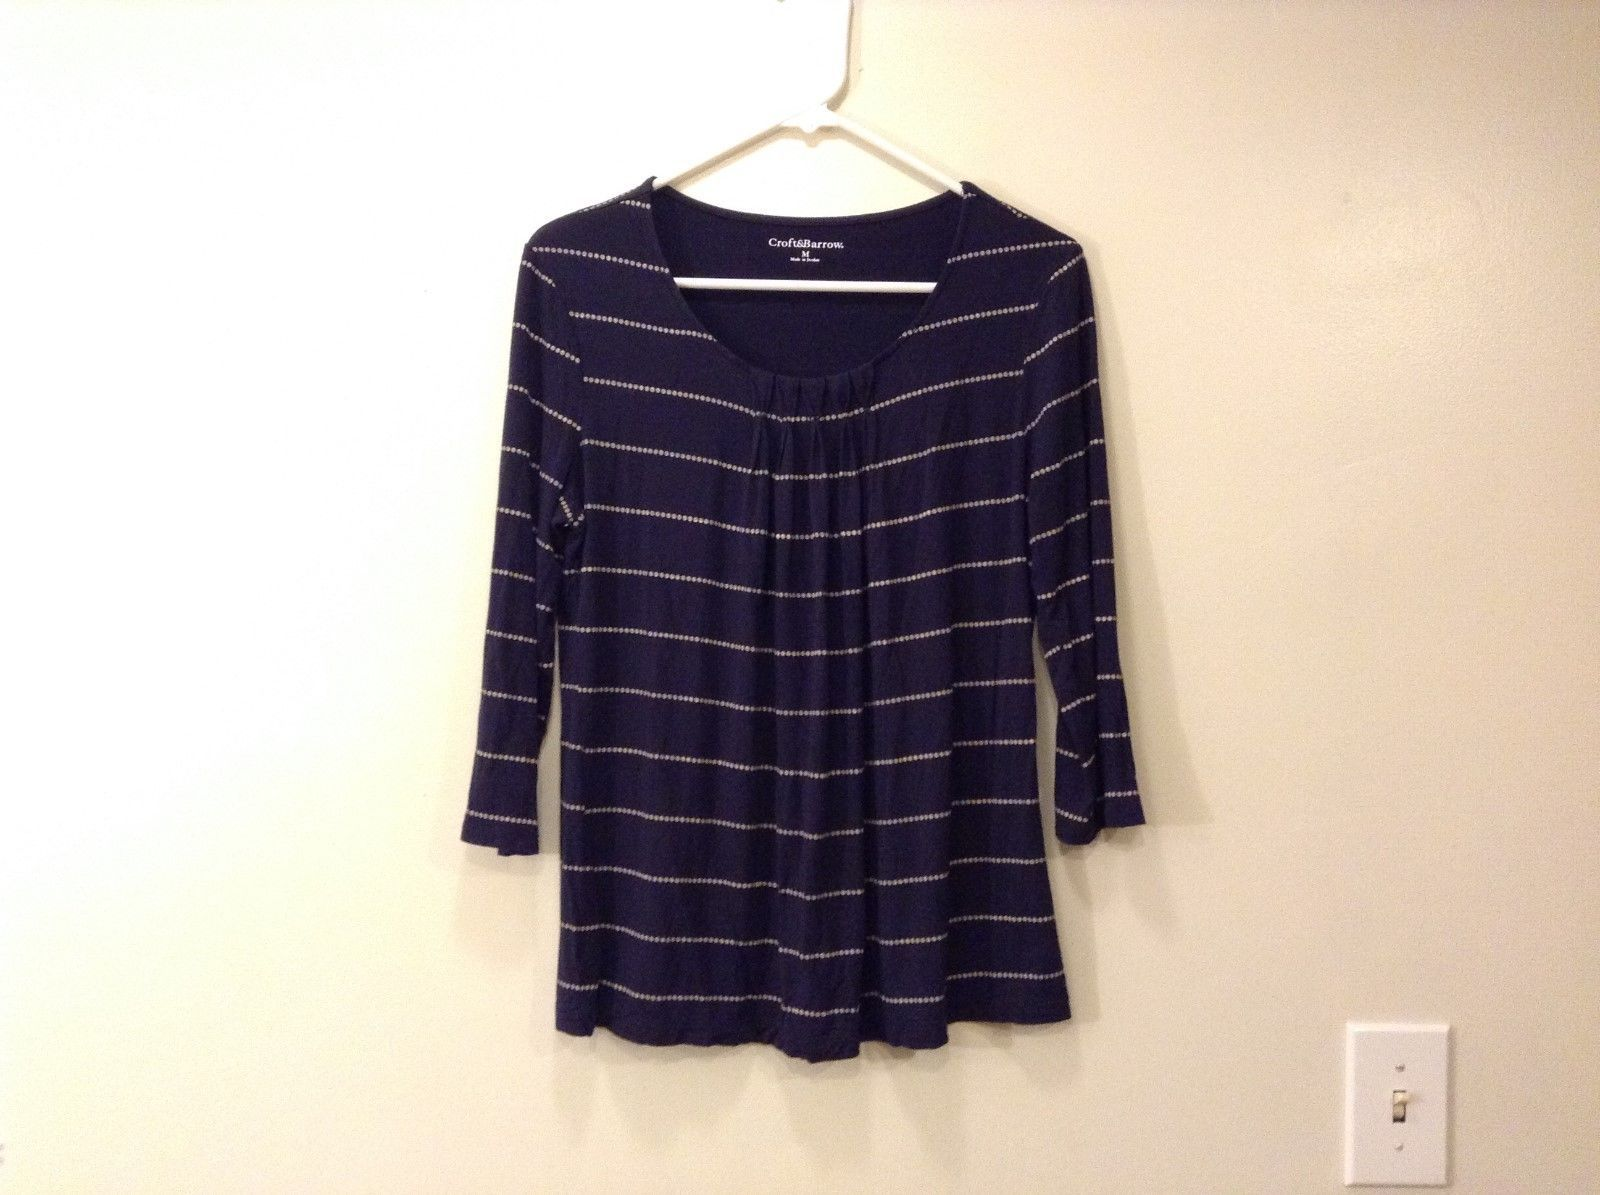 Ladies Croft and Barrow Navy Blue White Dotted Lined Top Blouse Sz M